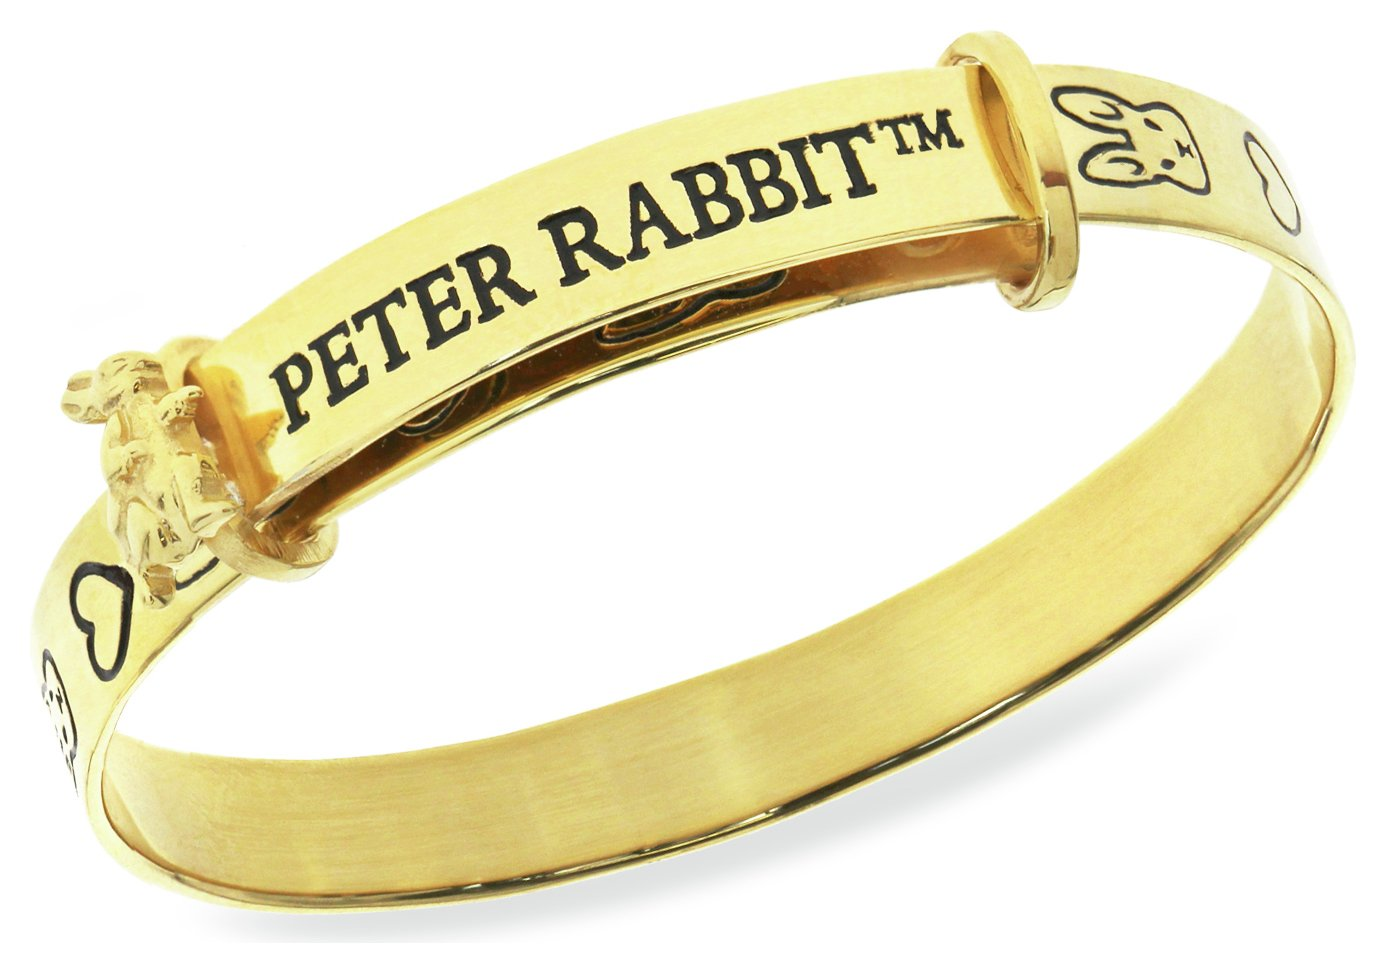 Beatrix Potter Gold Plated Peter Rabbit Expander Bangle